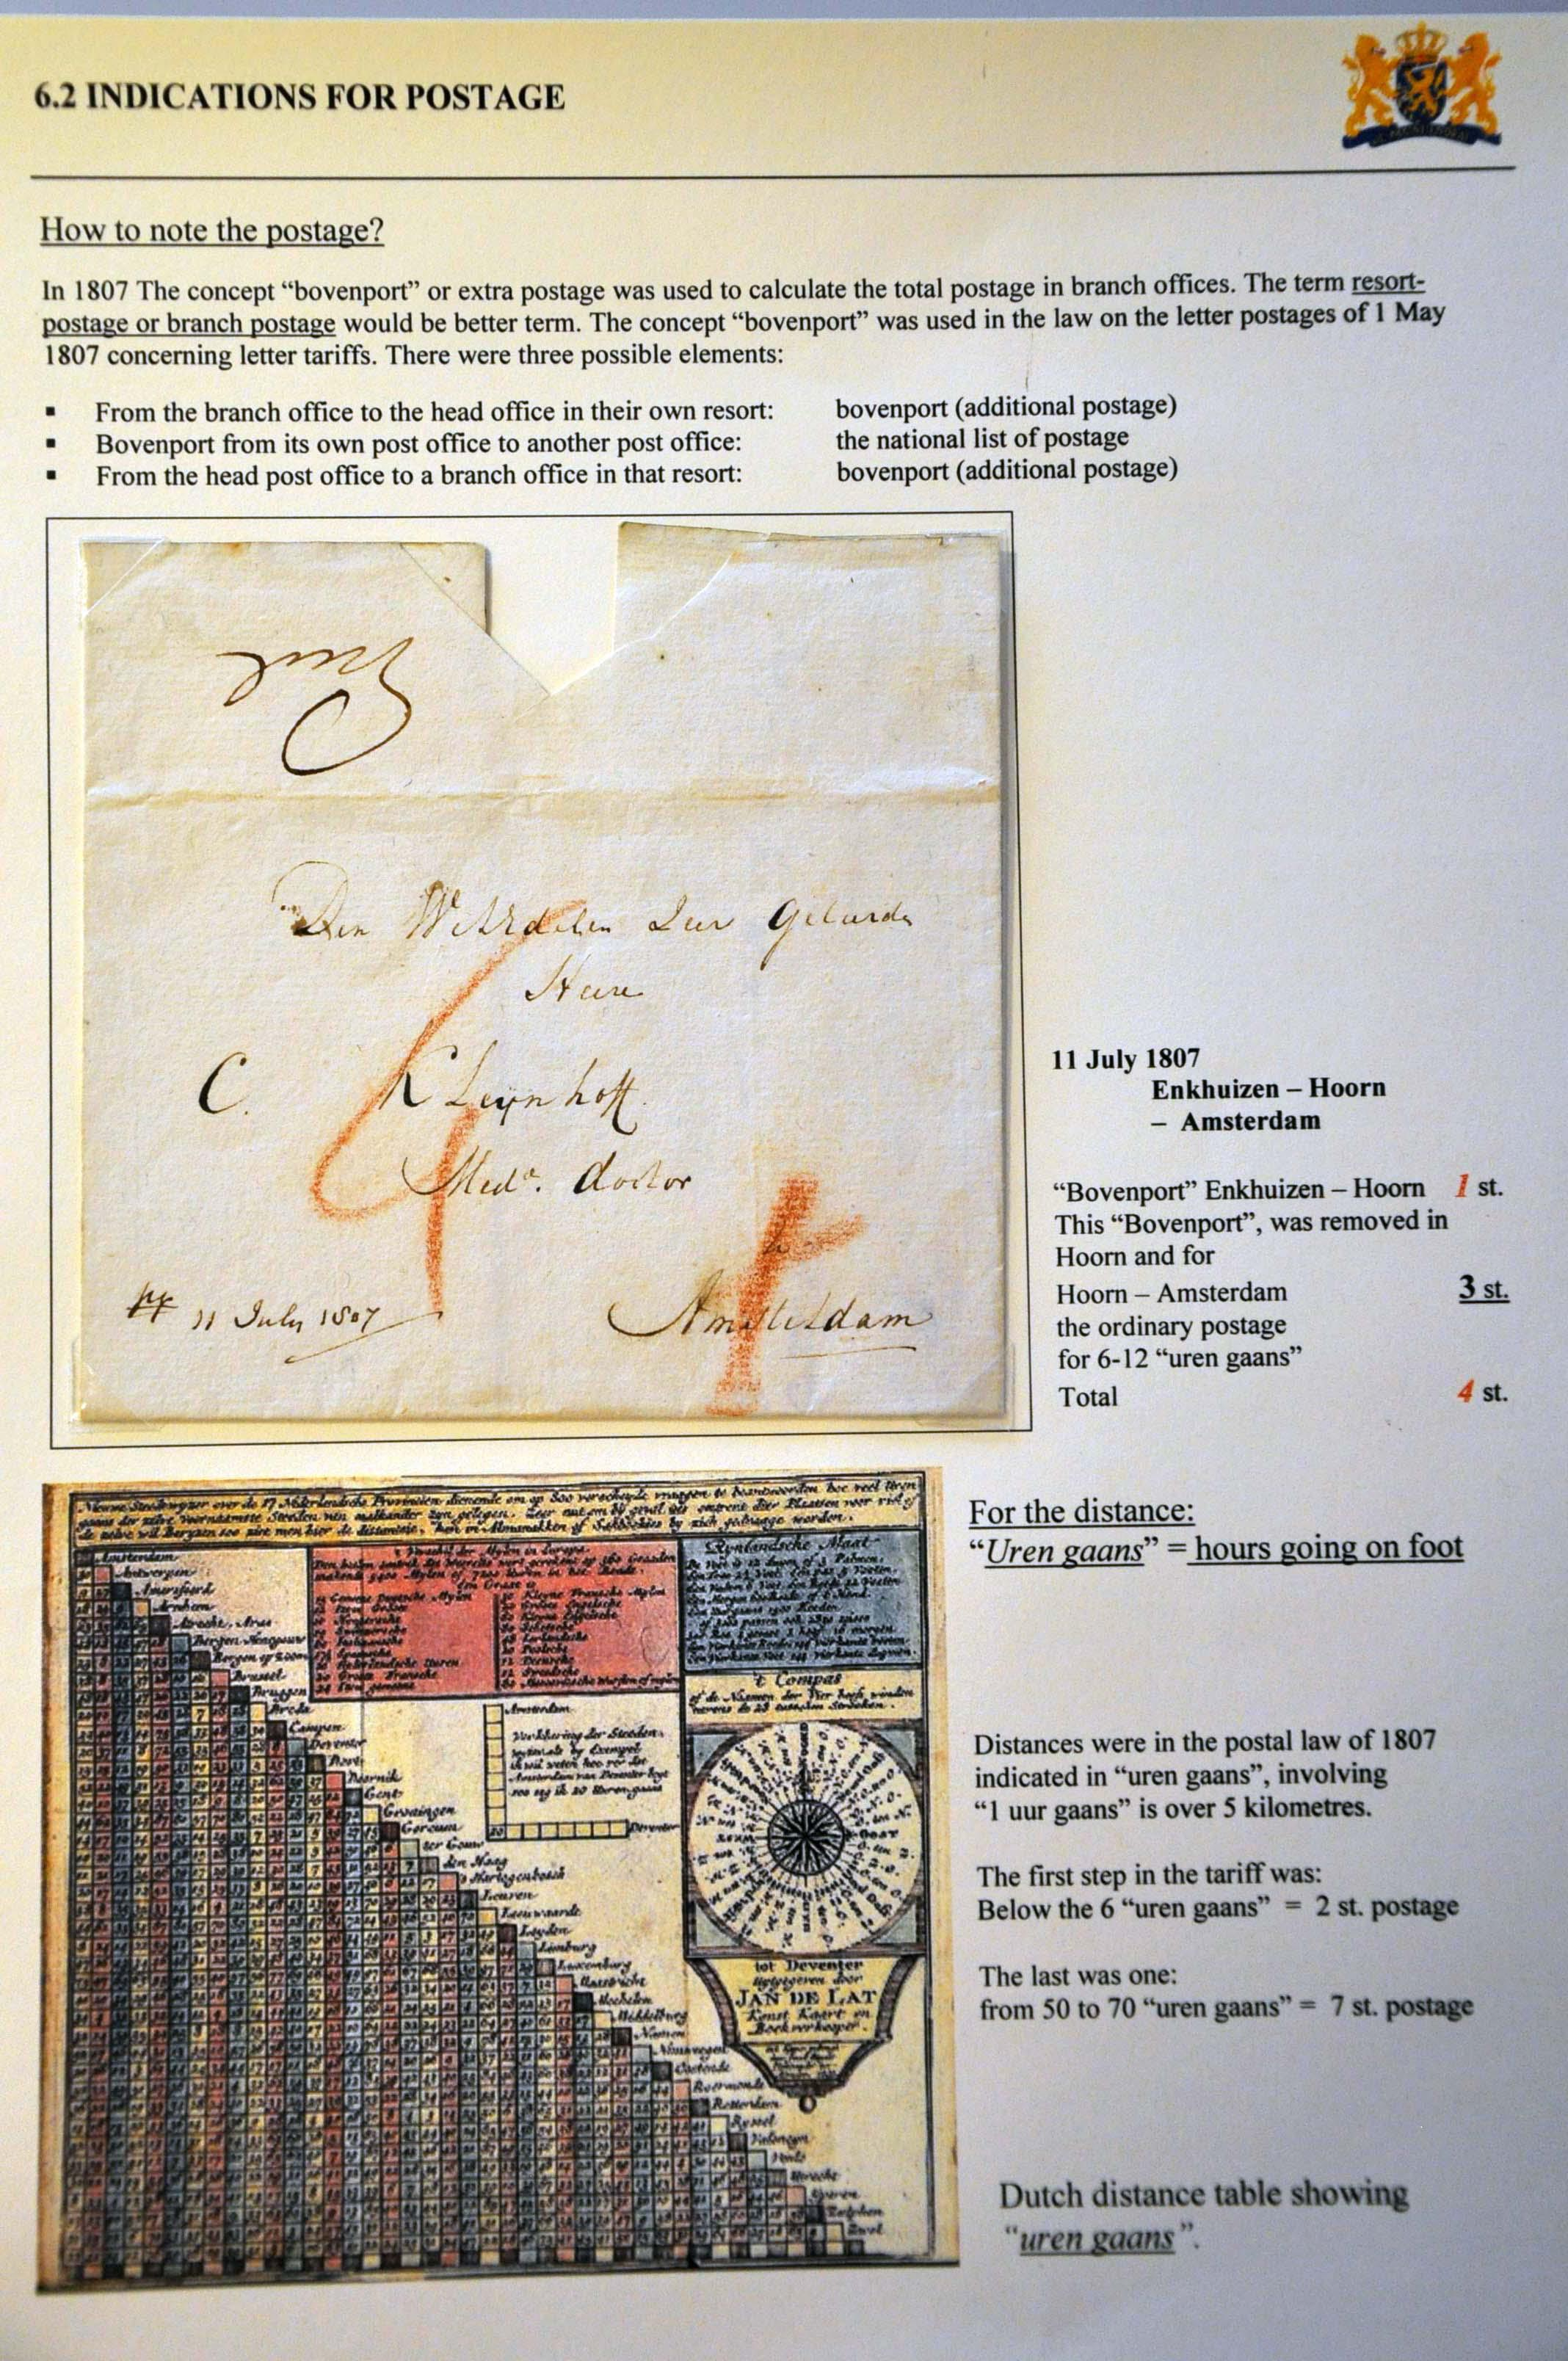 Lot 2215 - Netherlands and former colonies Netherlands -  Corinphila Veilingen Auction 244 -Netherlands and former colonies, WW2 Postal History, Bosnia, German and British colonies, Egypt. - Day 2